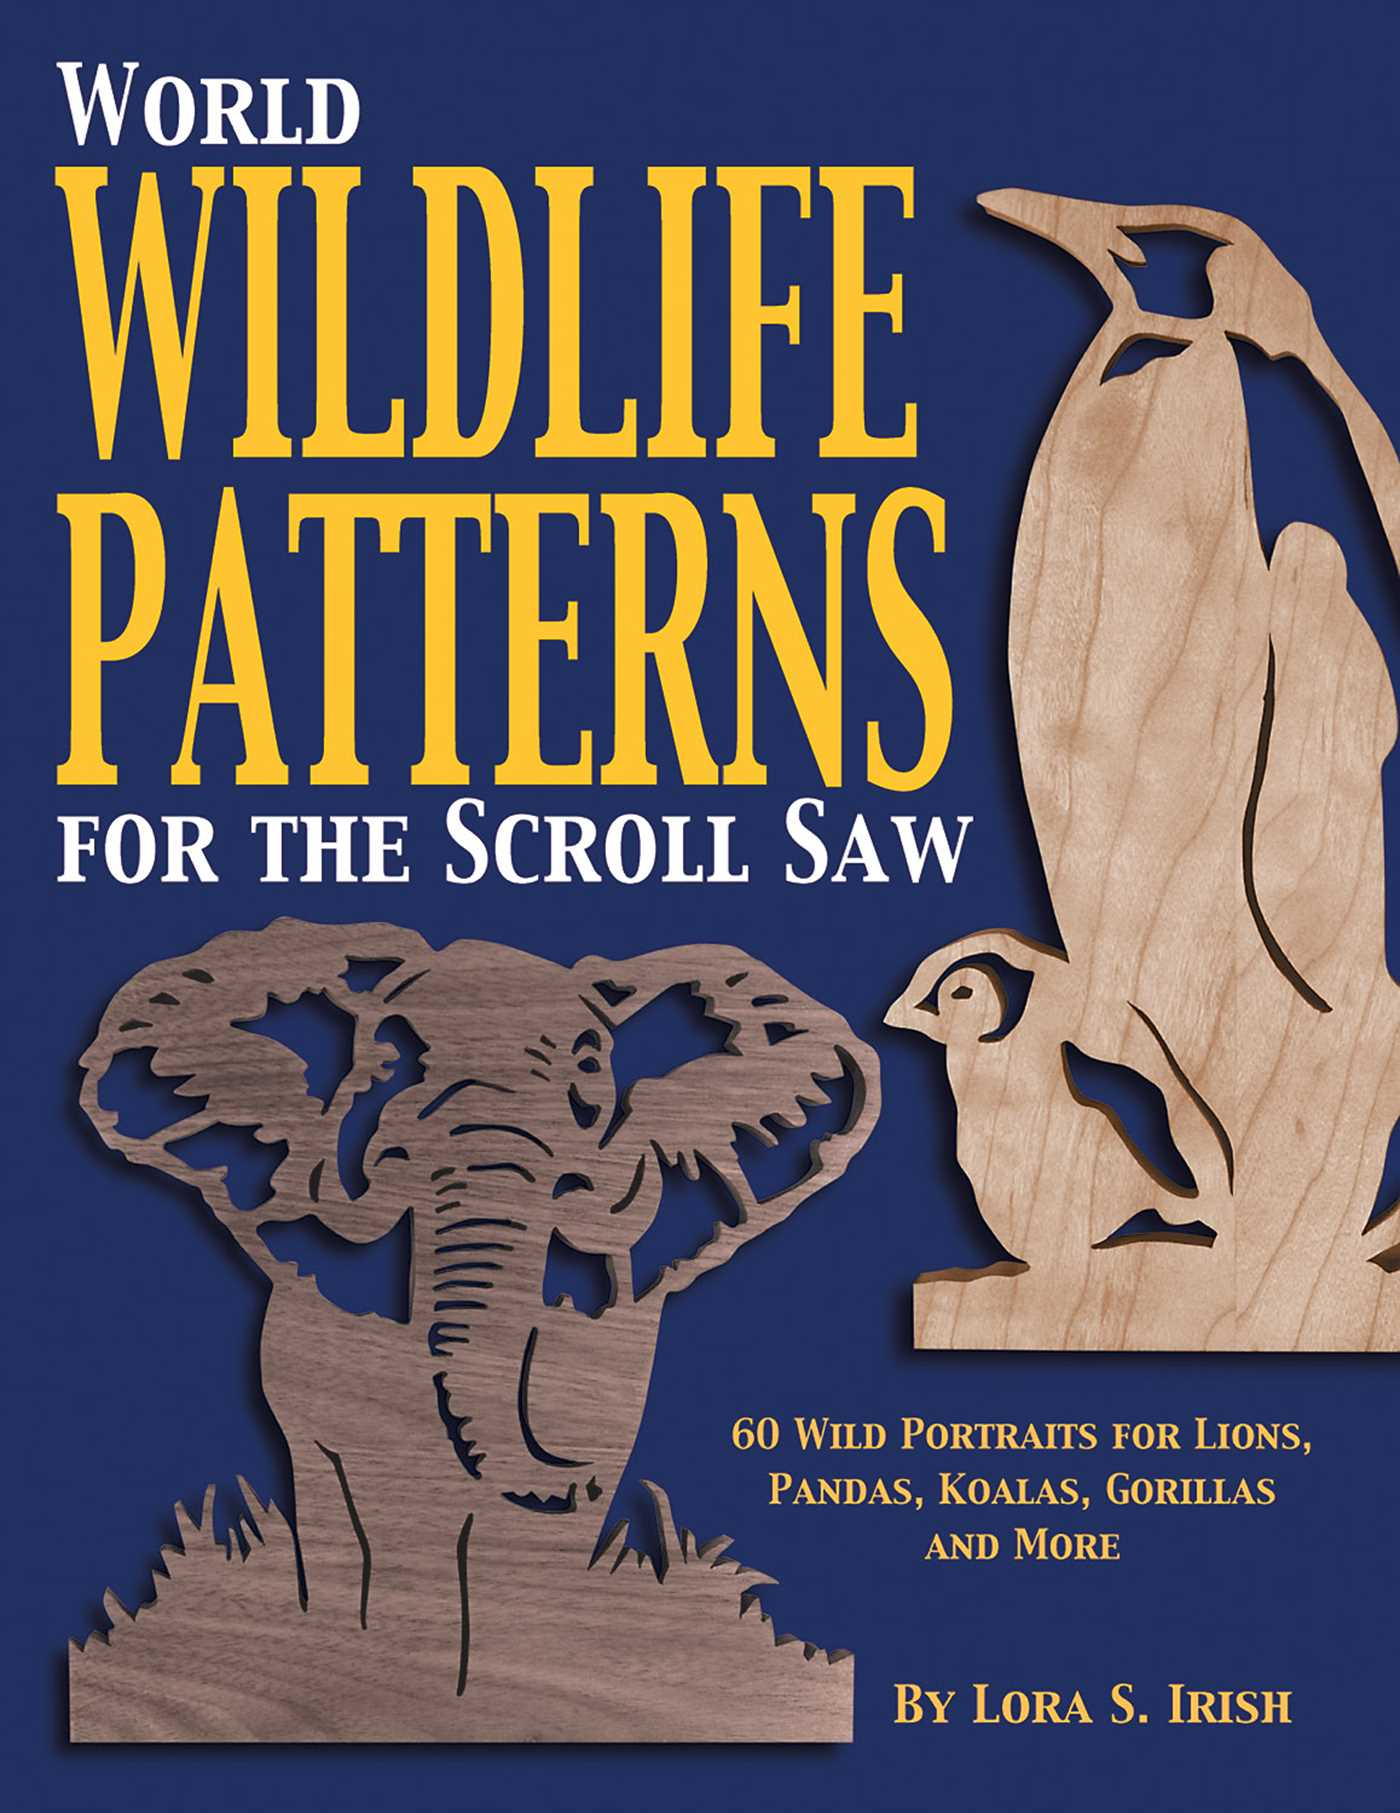 World wildlife patterns for the scroll saw book by lora s irish book cover image jpg world wildlife patterns for the scroll saw fandeluxe Images